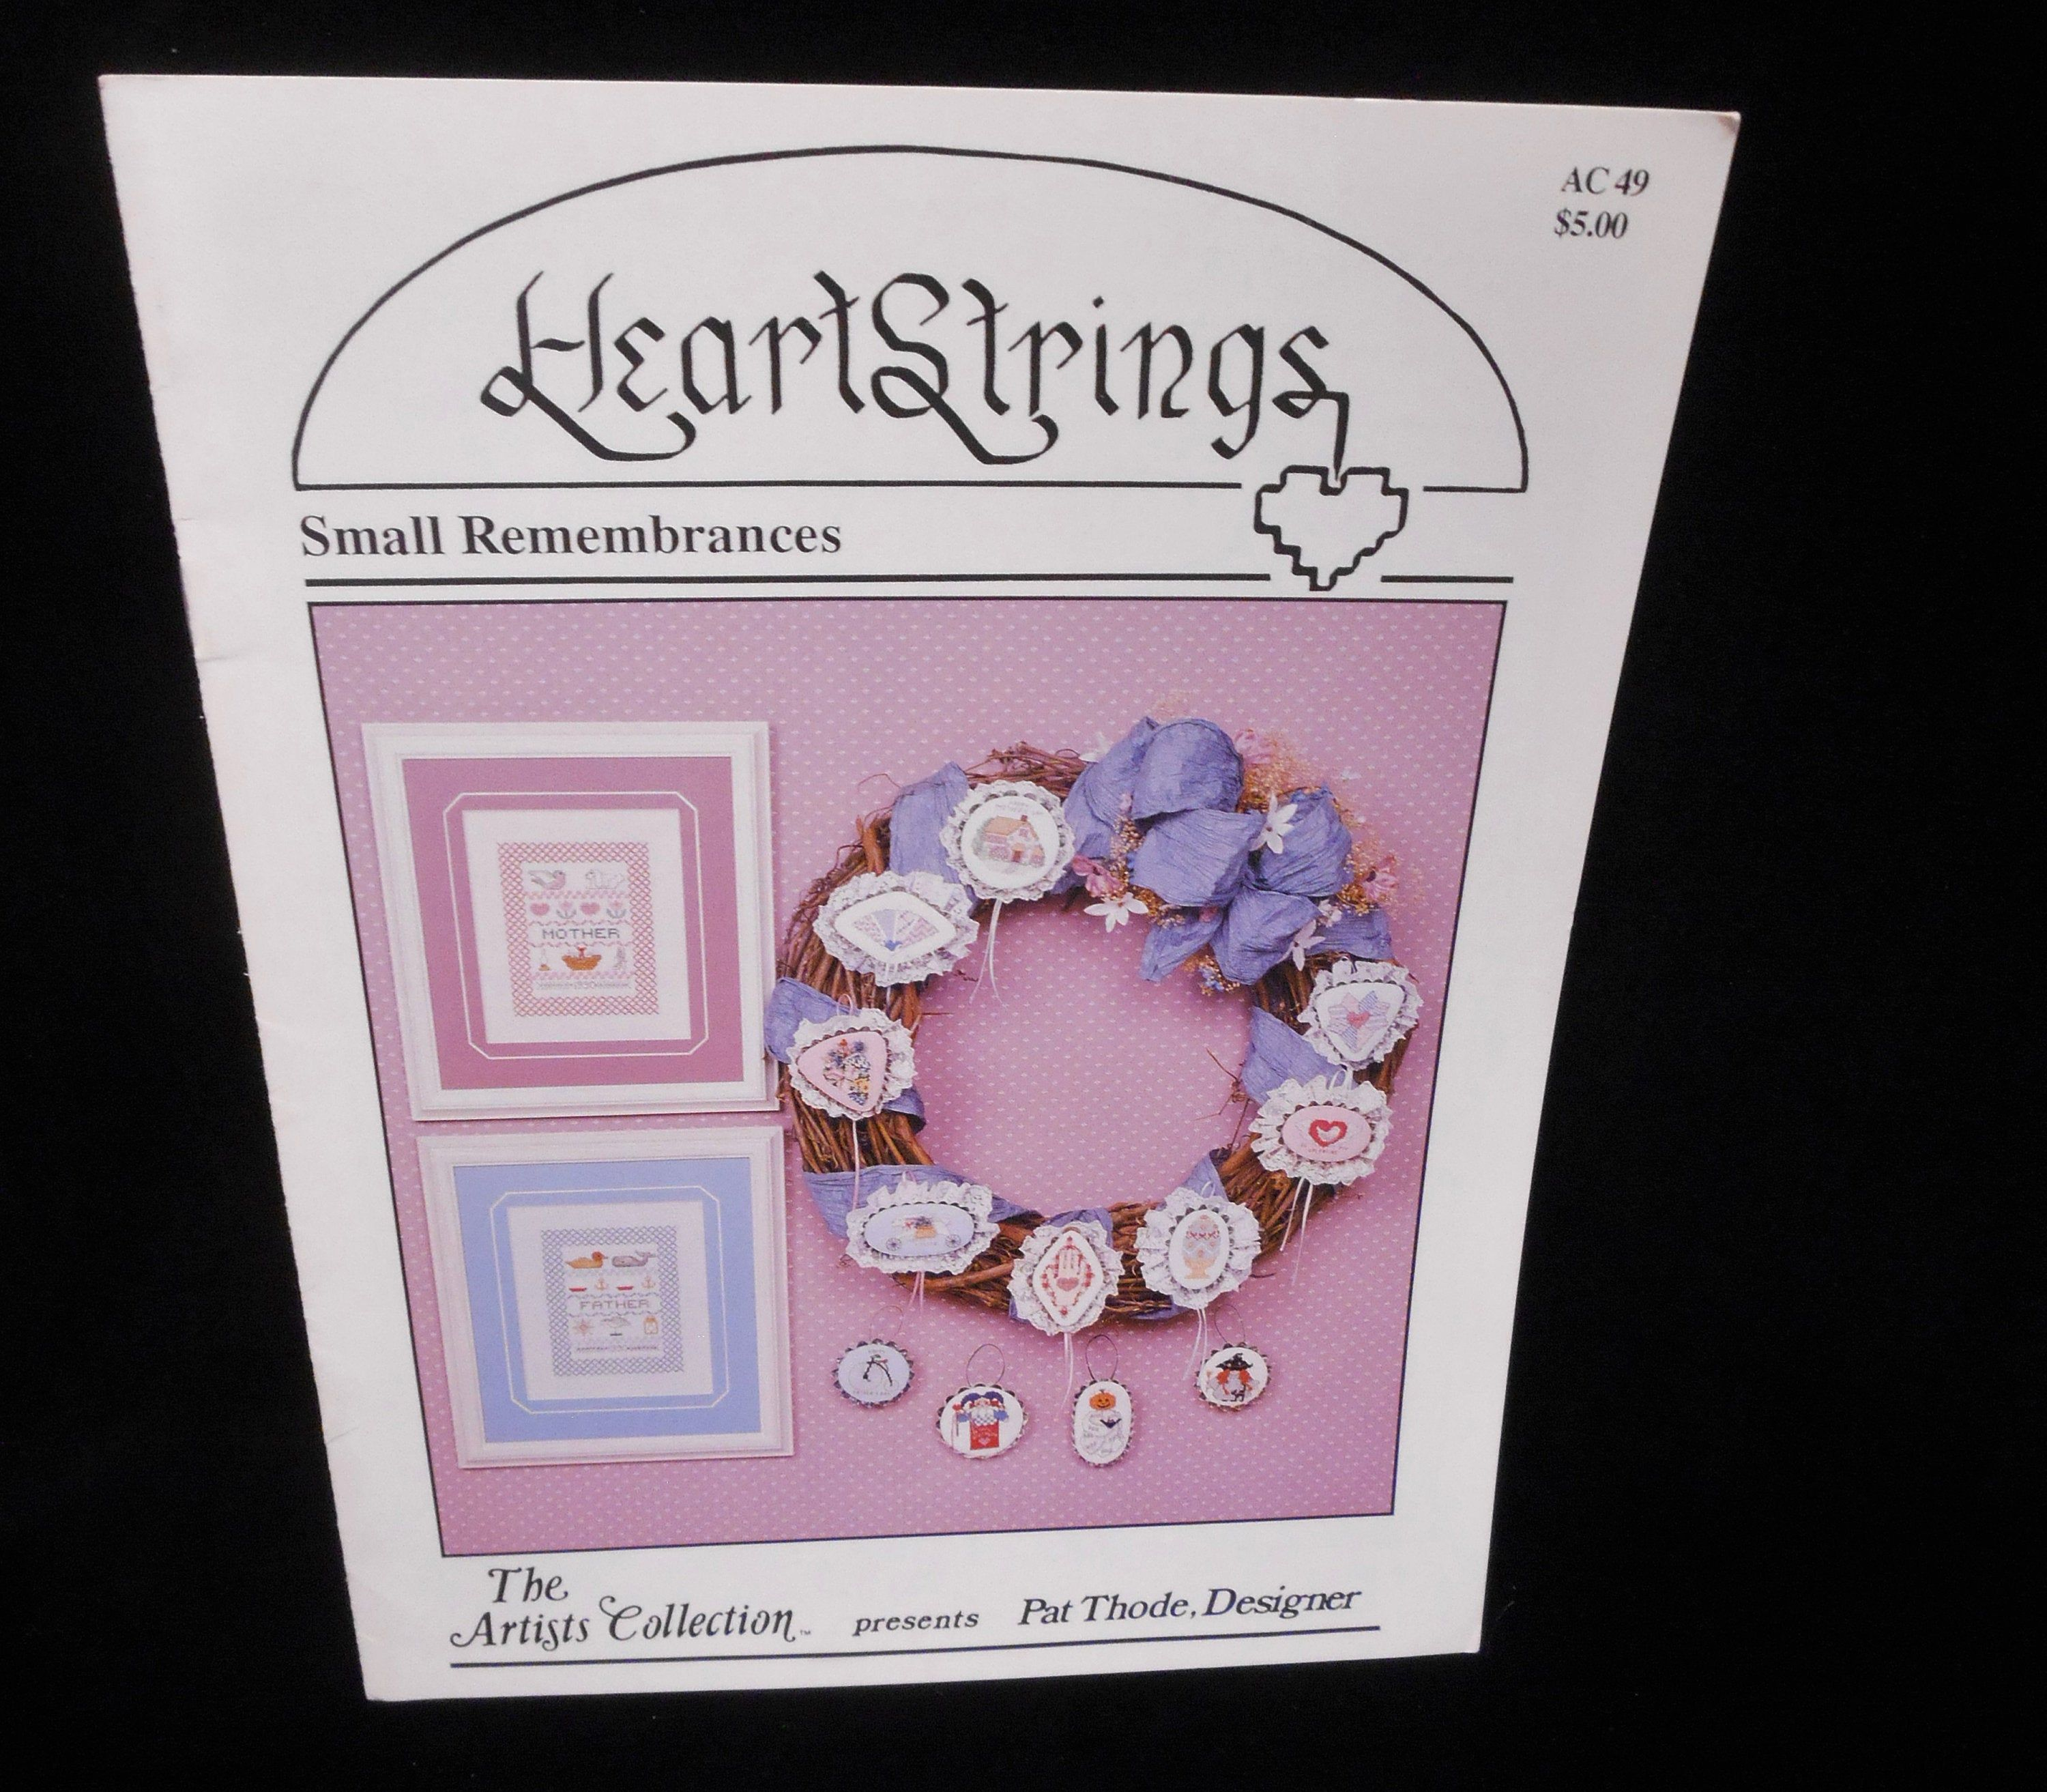 Small Remembrances Artists Collection AC49 Heartstrings Cross Stitch booklet Wee Witch Cottage Calico Fan Bunny Fancy Egg Ghost #witchcottage